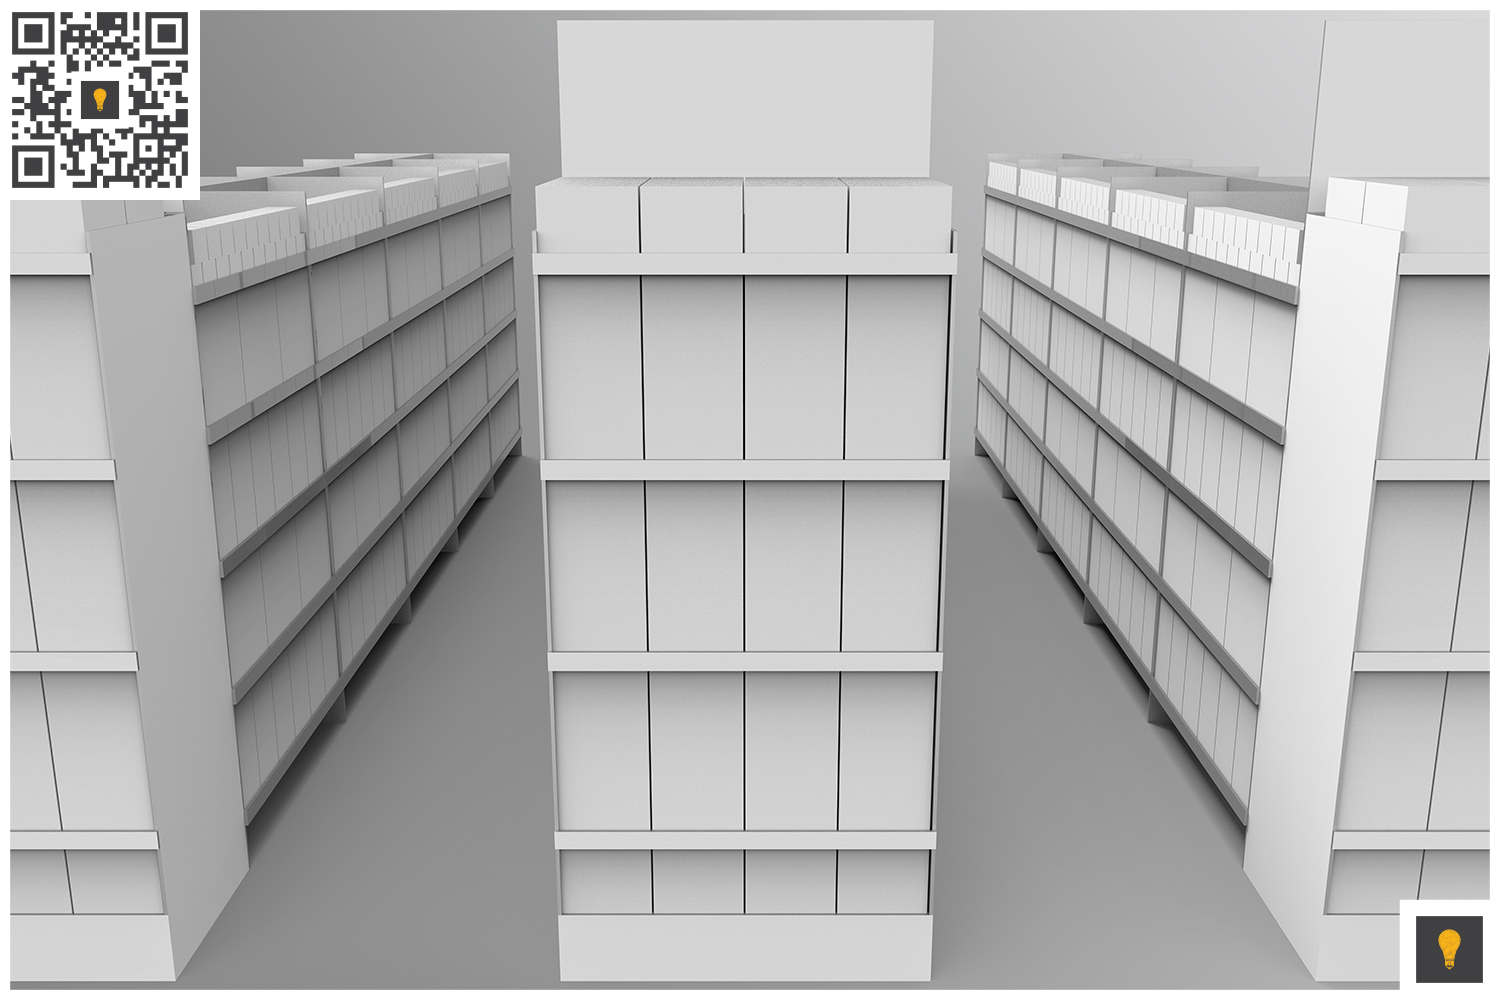 Aisle with Gondola Store 3D Render example image 3